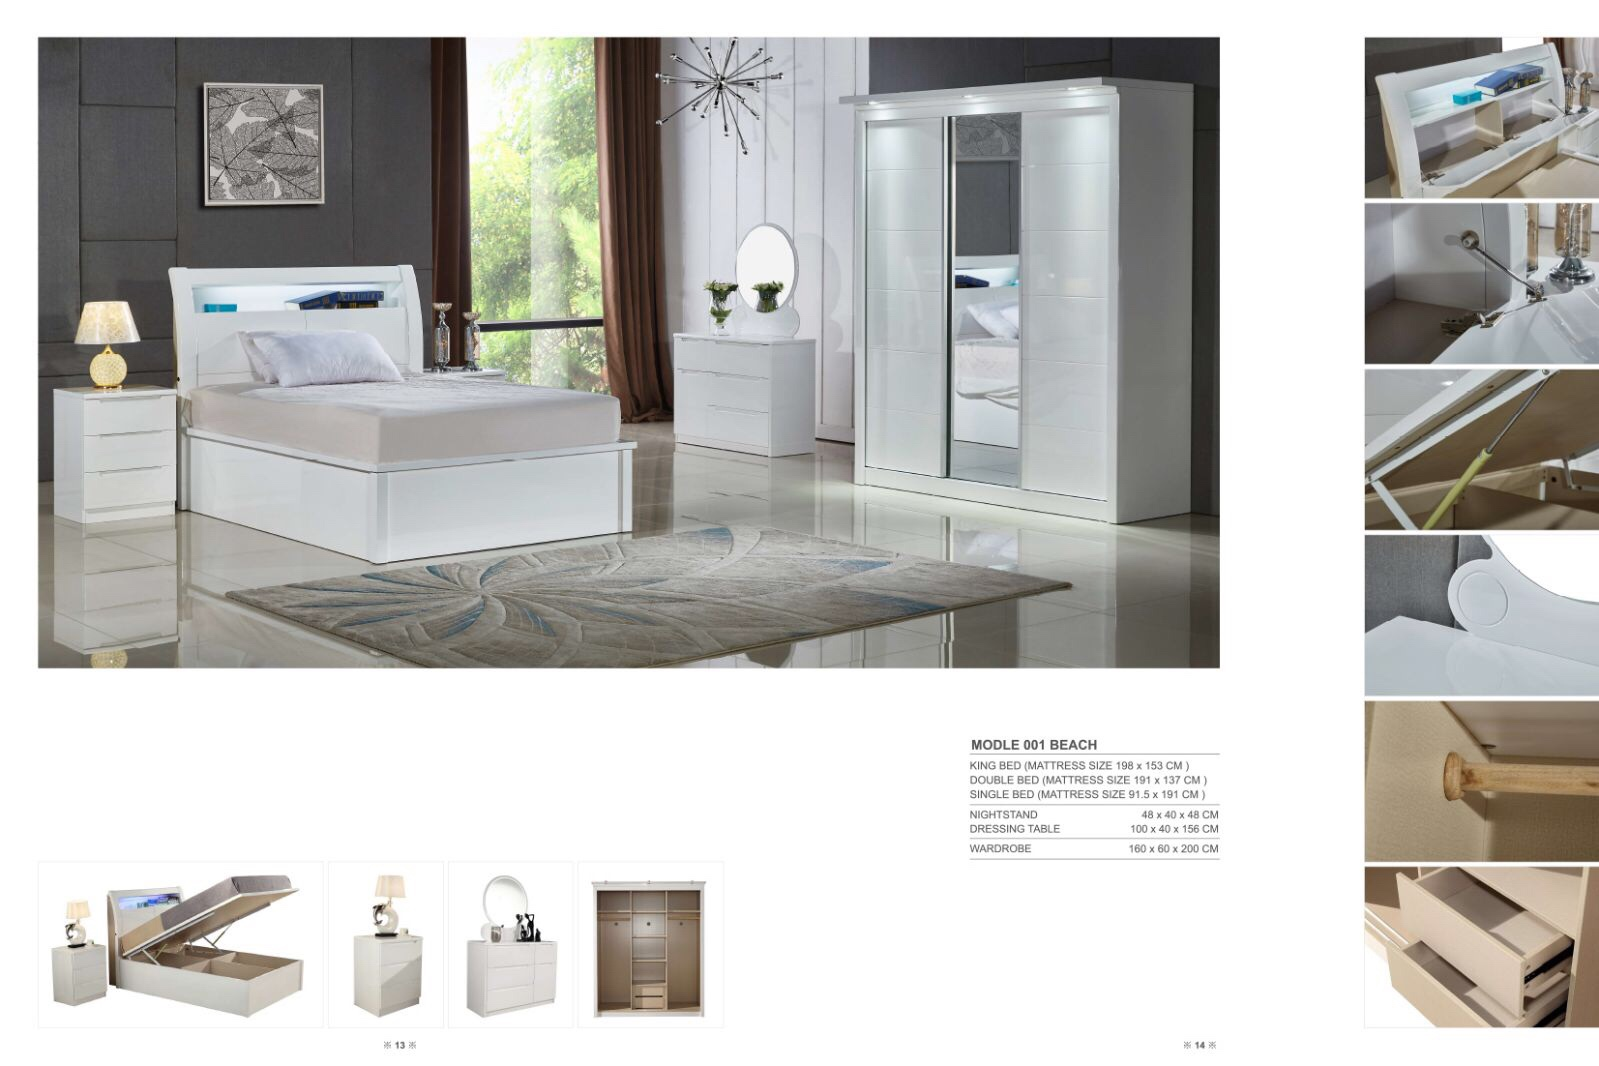 Rugby White Gloss Bedroom Set  with LED